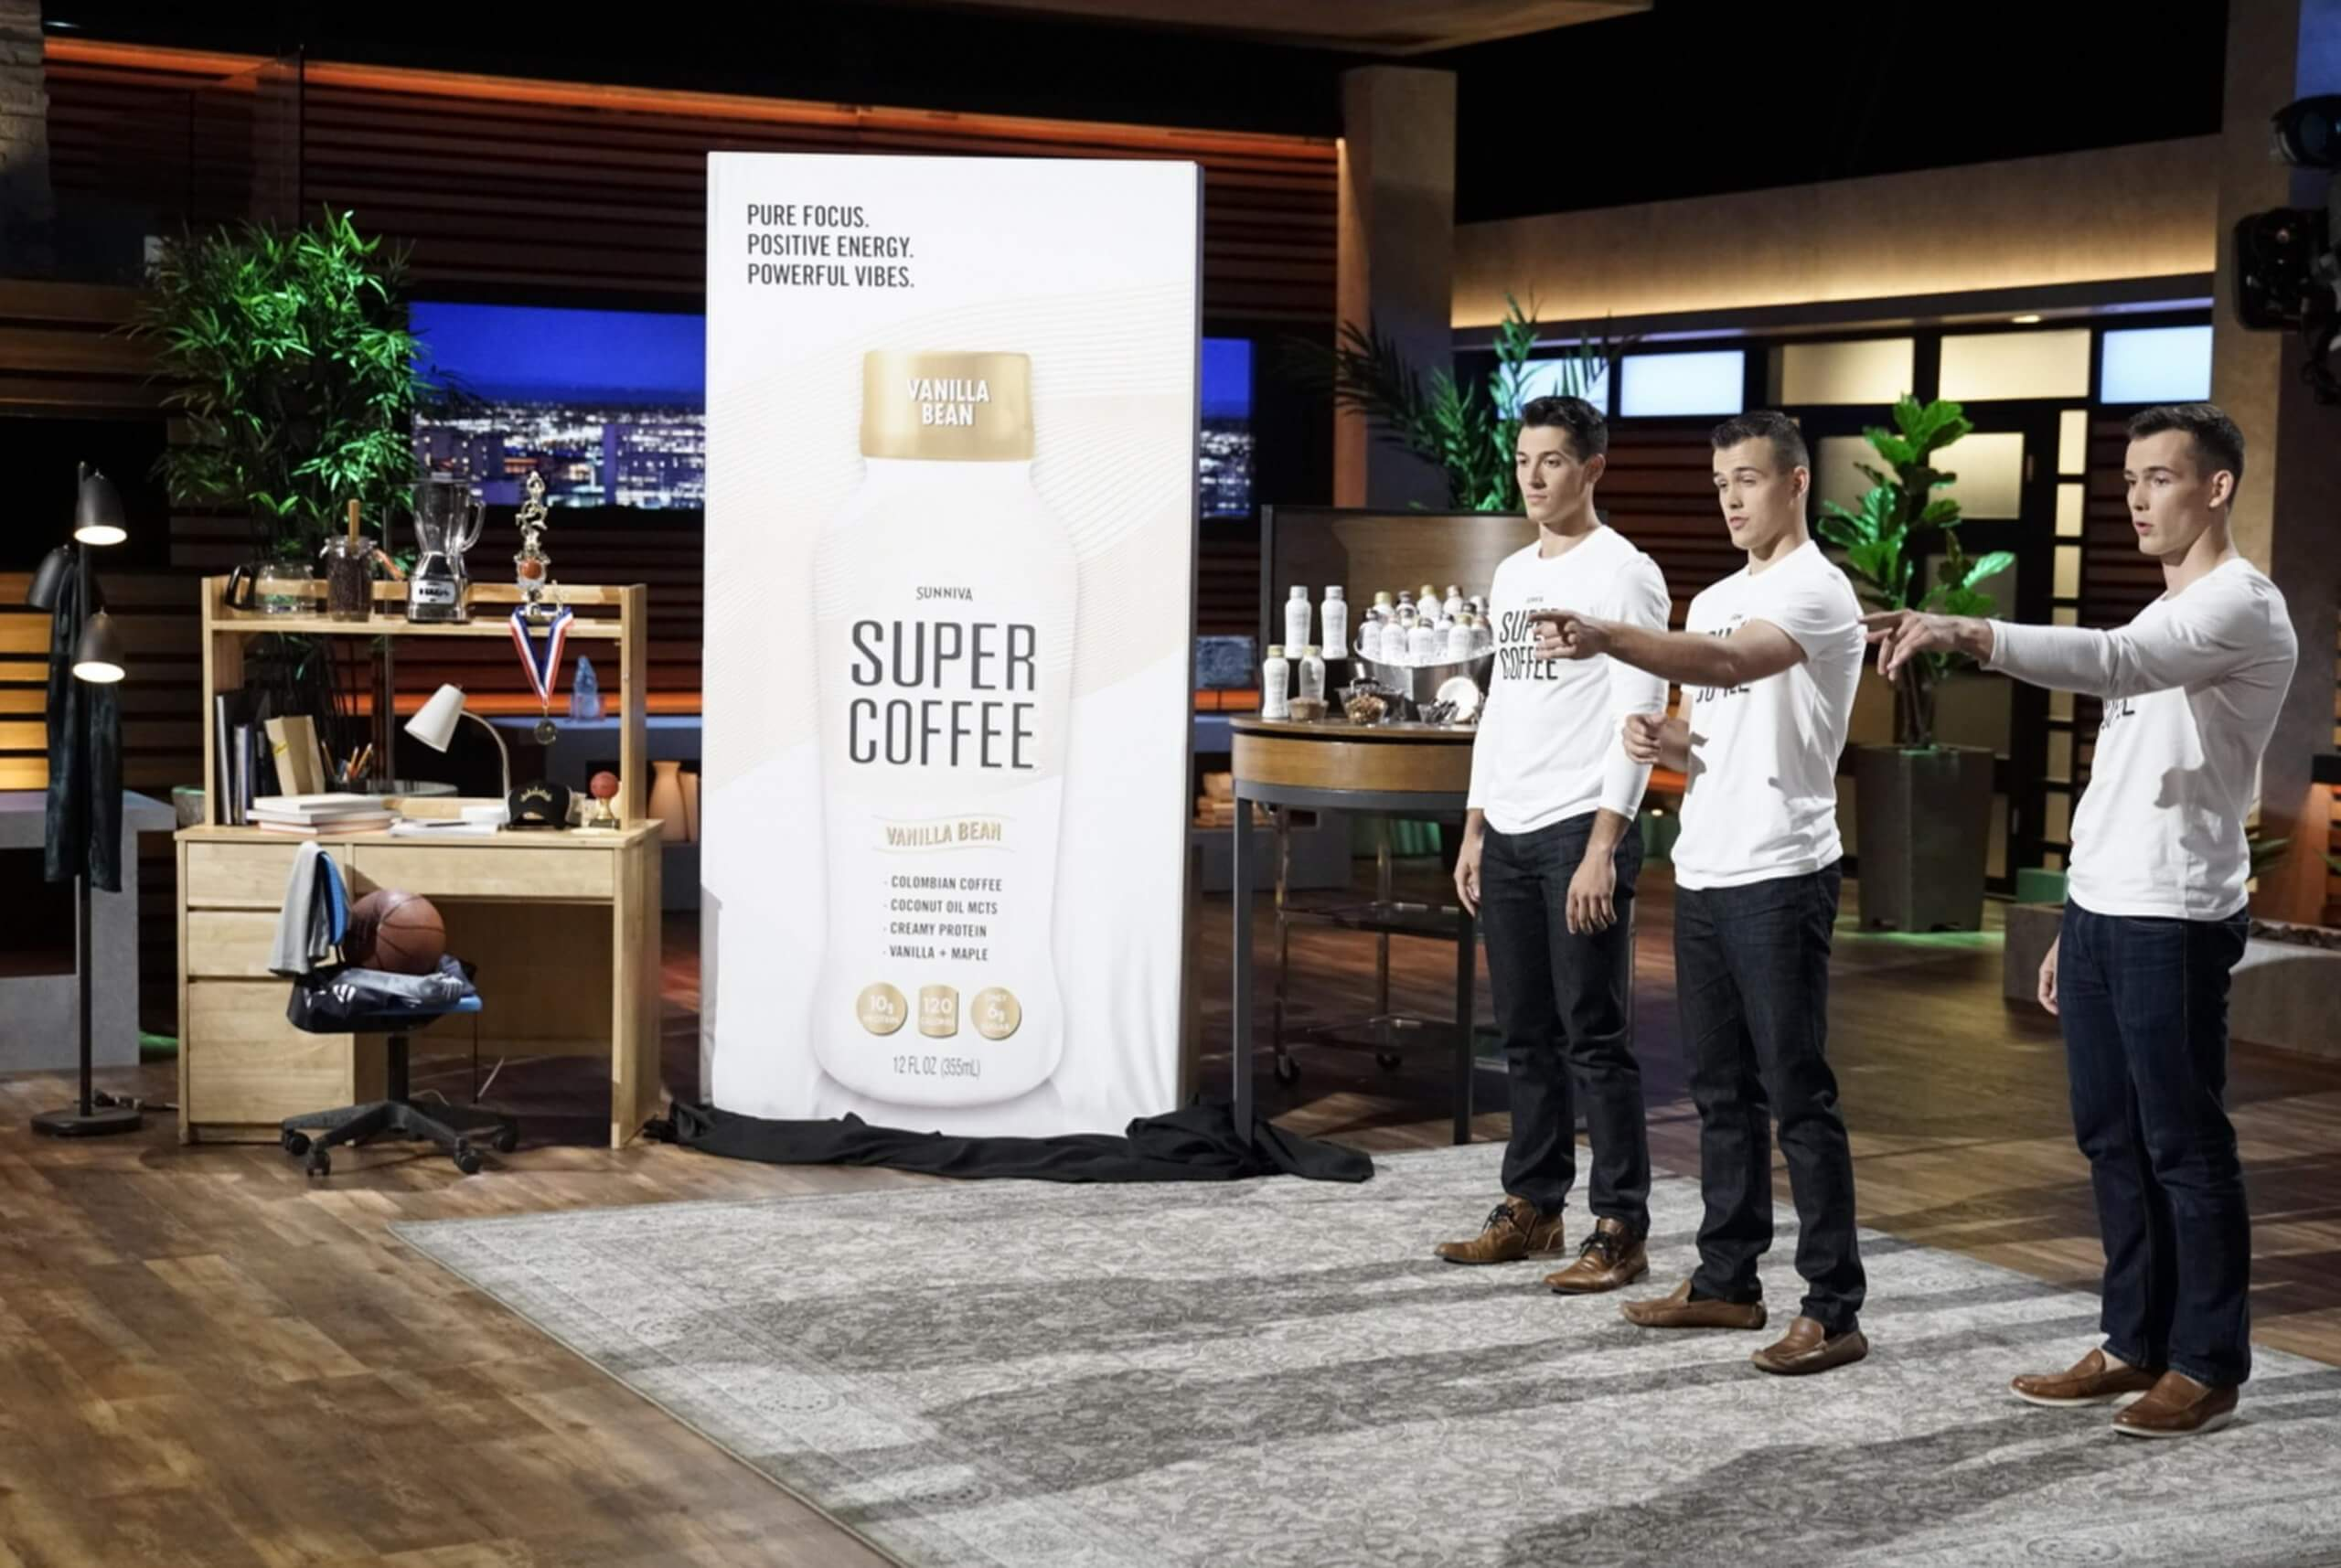 The DeCicco brothers pitching Super Coffee on Shark Tank